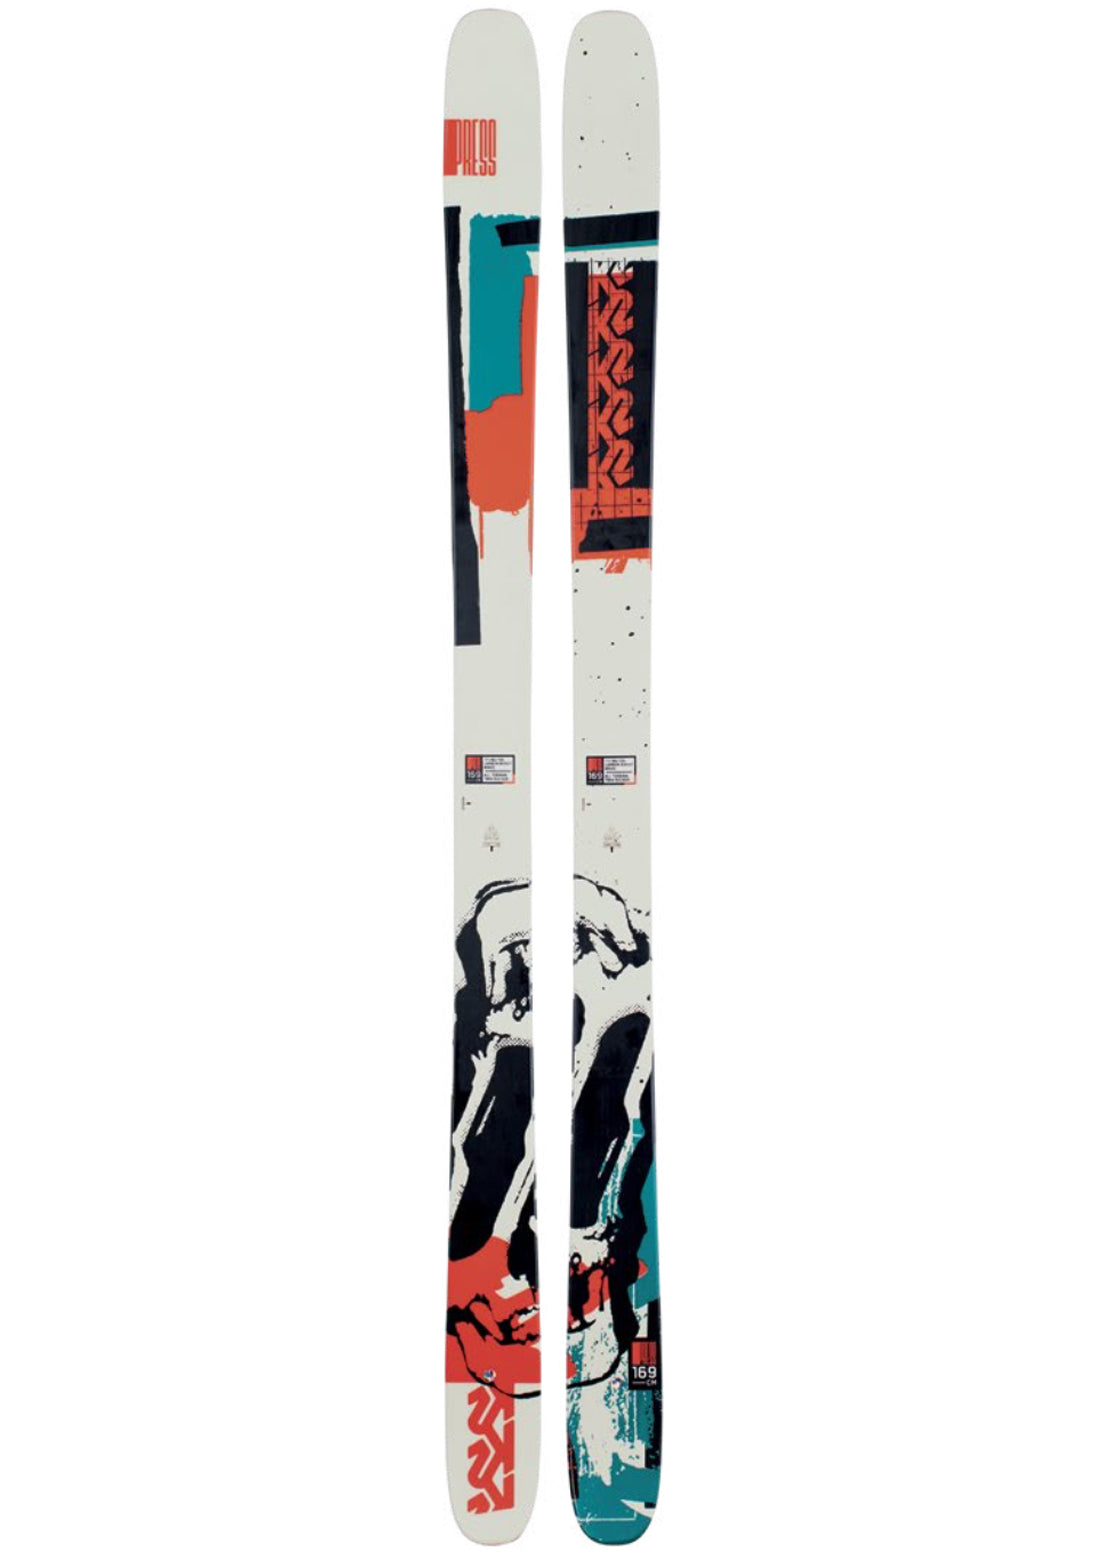 K2 Men's Press Ski - 159 cm Multi